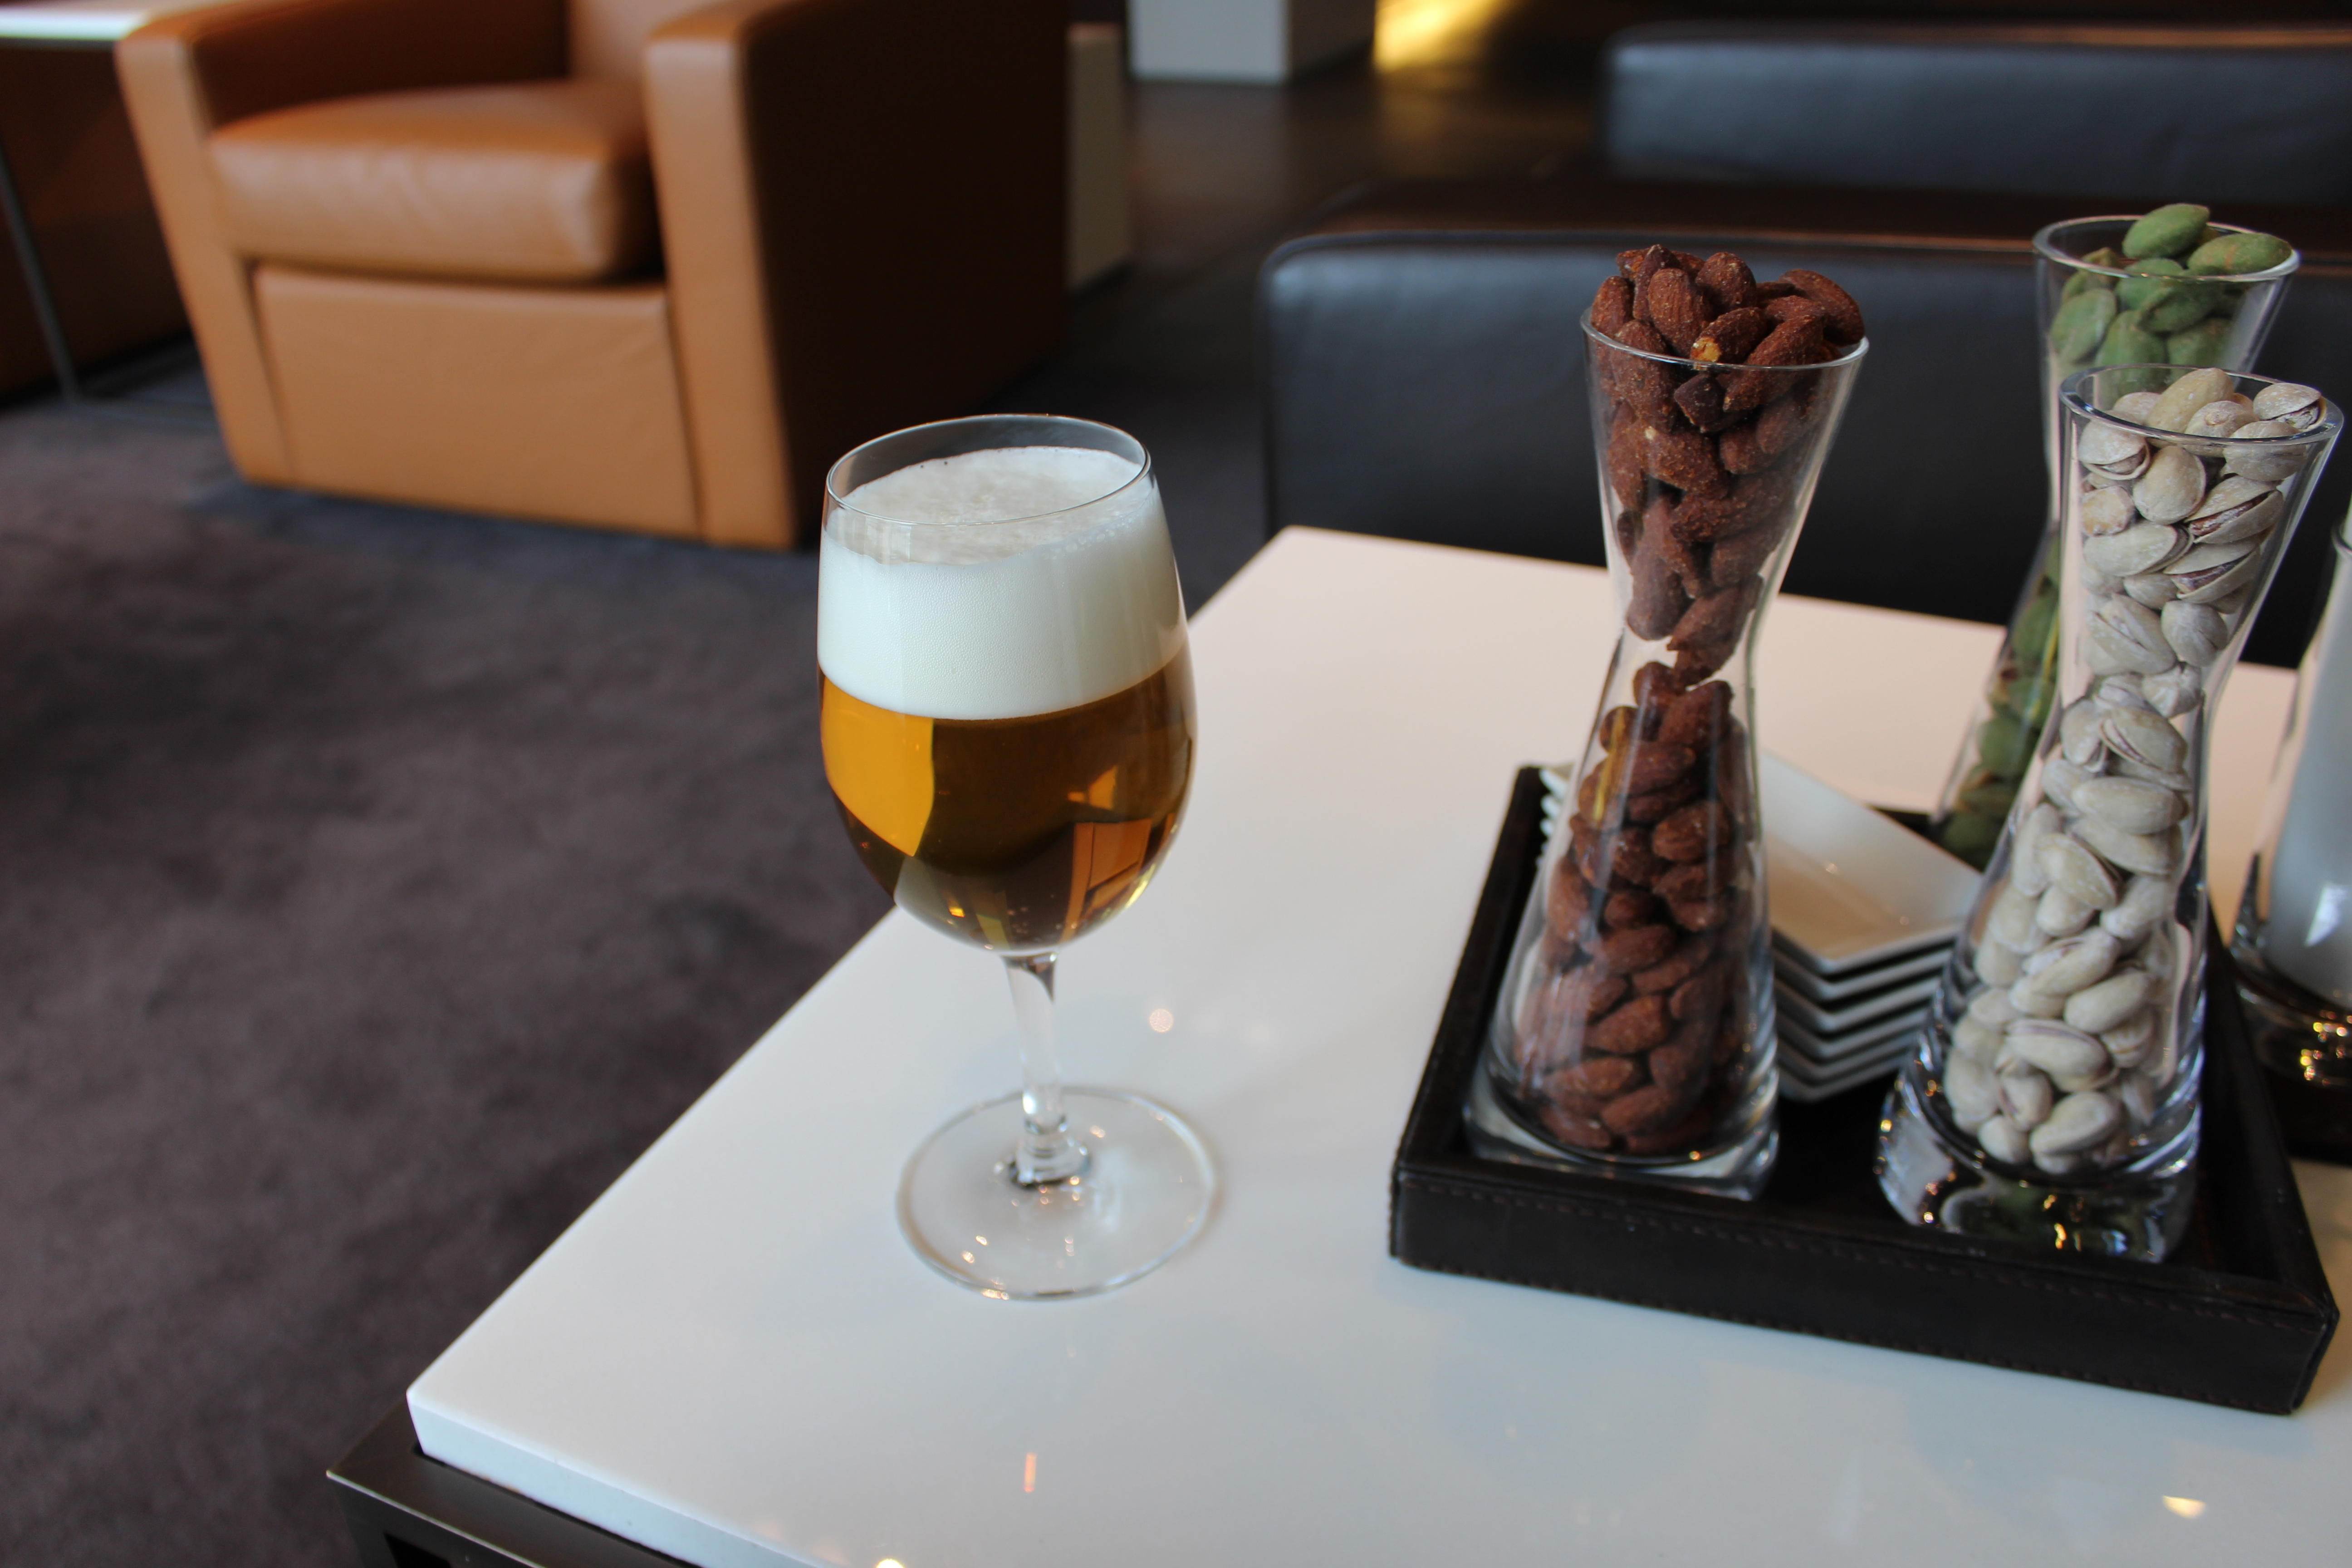 Lufthansa First Class Terminal German Beer and Nuts